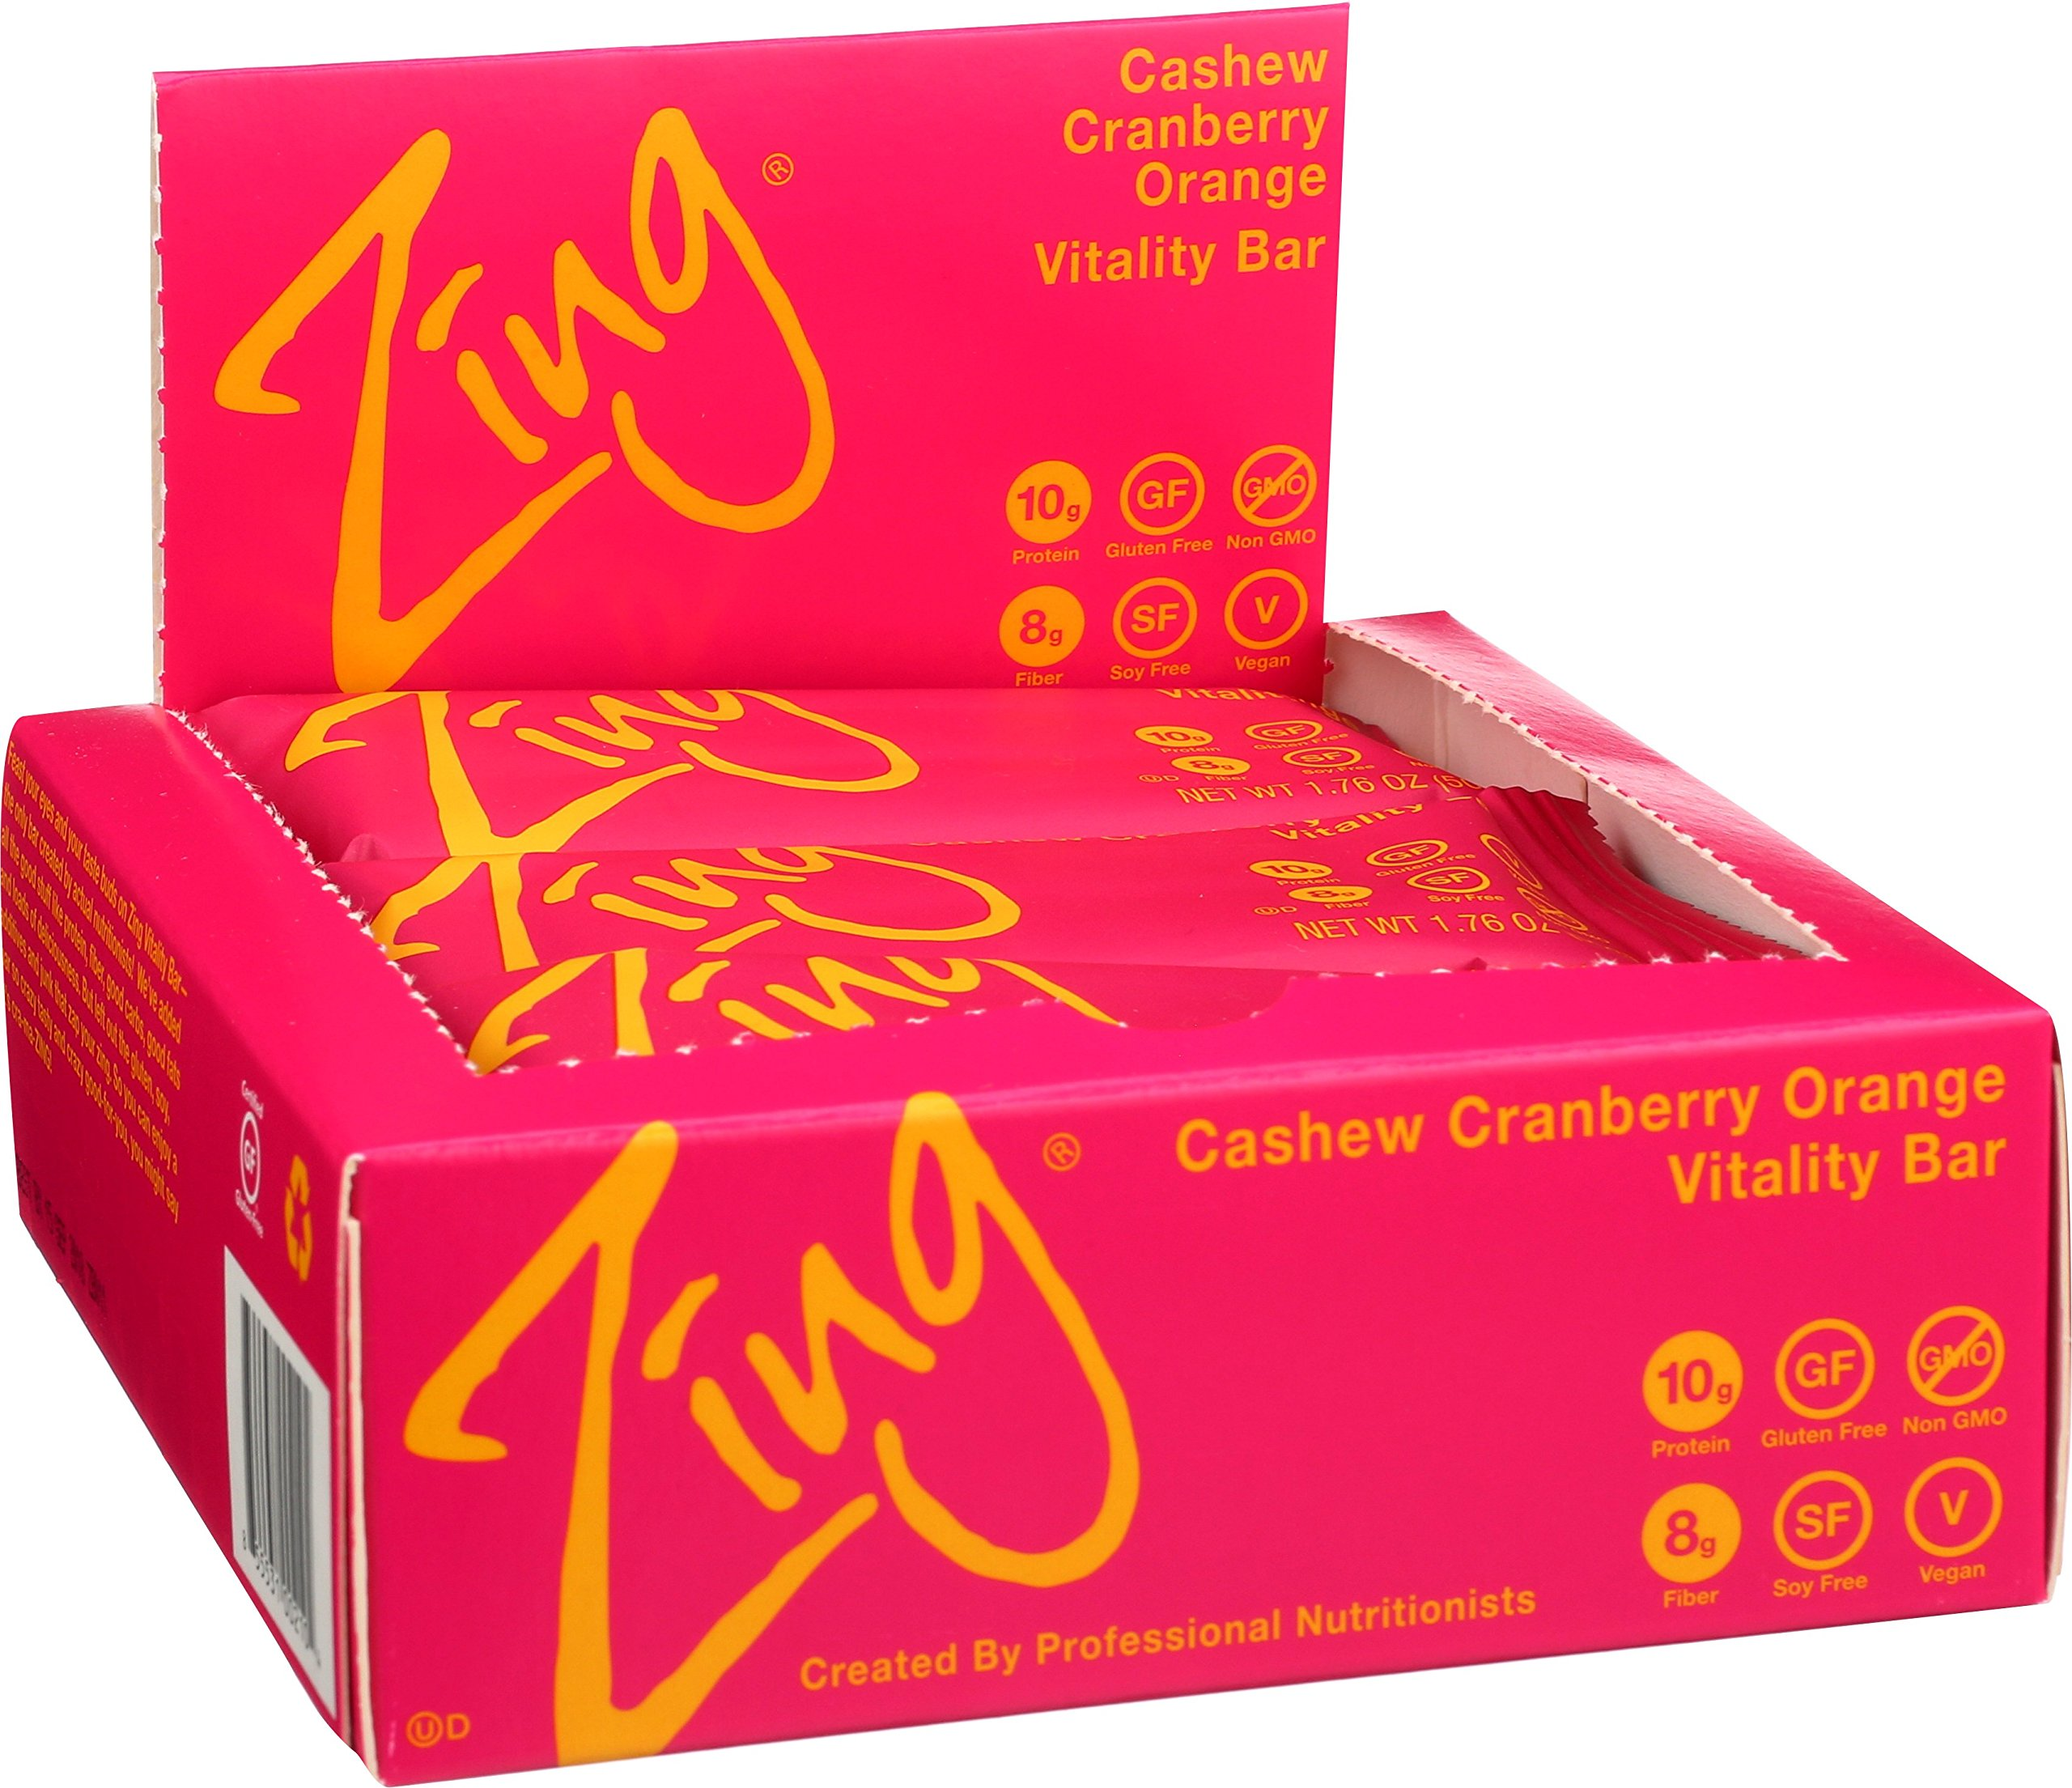 Zing Nutrition Bar, Cashew Cranberry Orange, (Pack of 12), Non-GMO Snack Bar for Optimum Energy, Gluten & Soy Free, Plant-Based Protein by Zing Bars (Image #3)